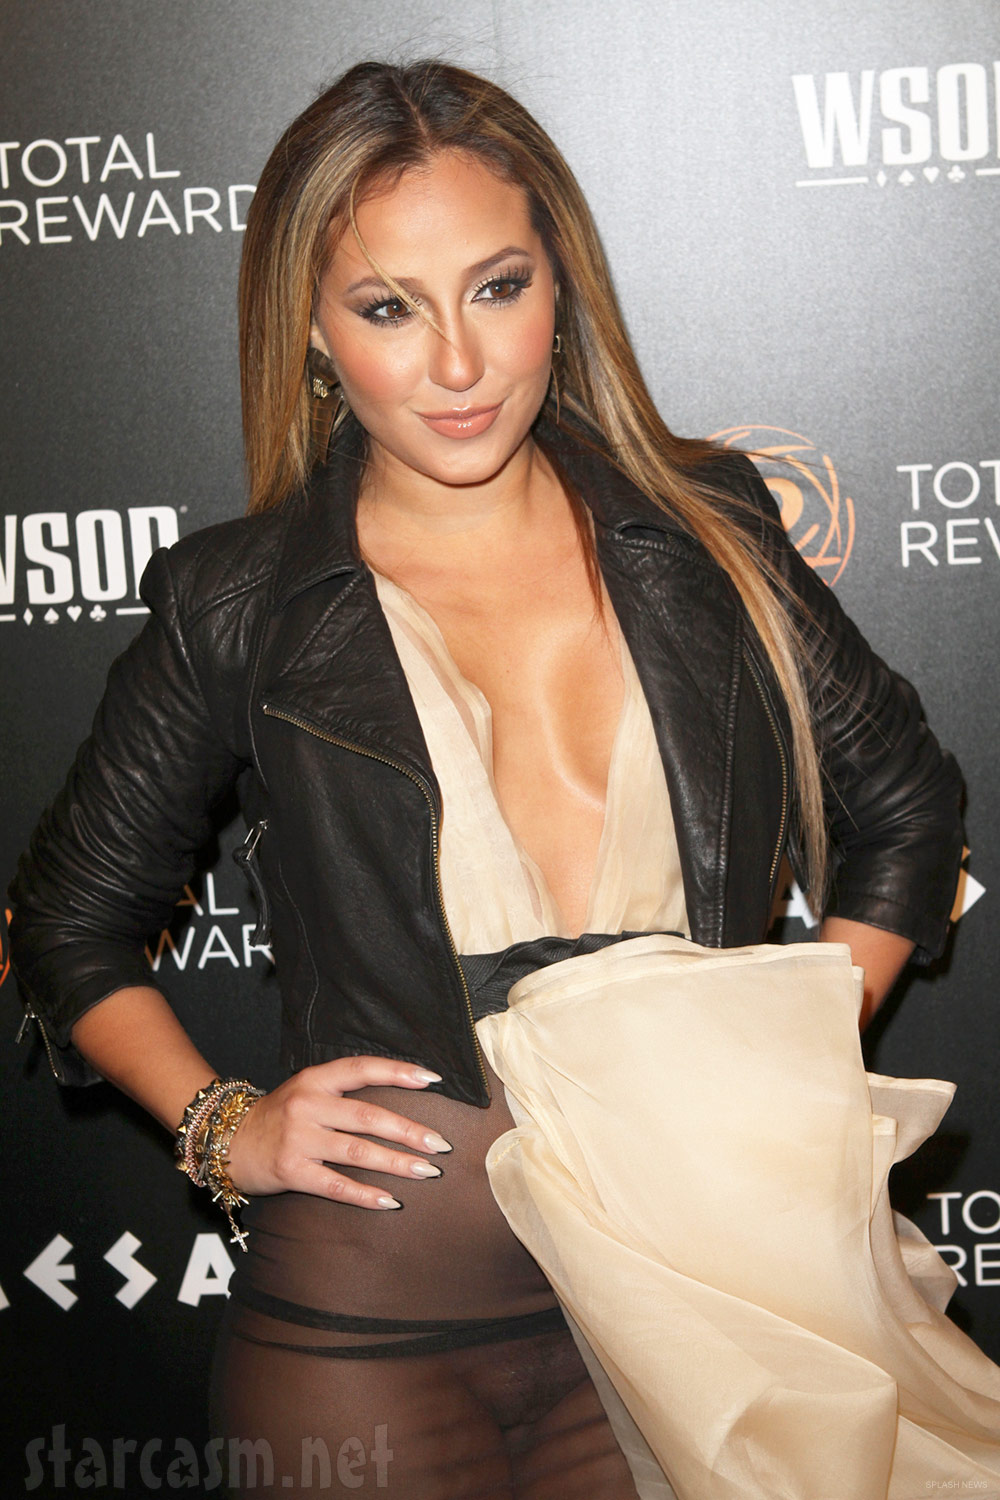 Mar, 01, 2012 | AUTHOR: Asa Hawks ; | Related : Adrienne Bailon